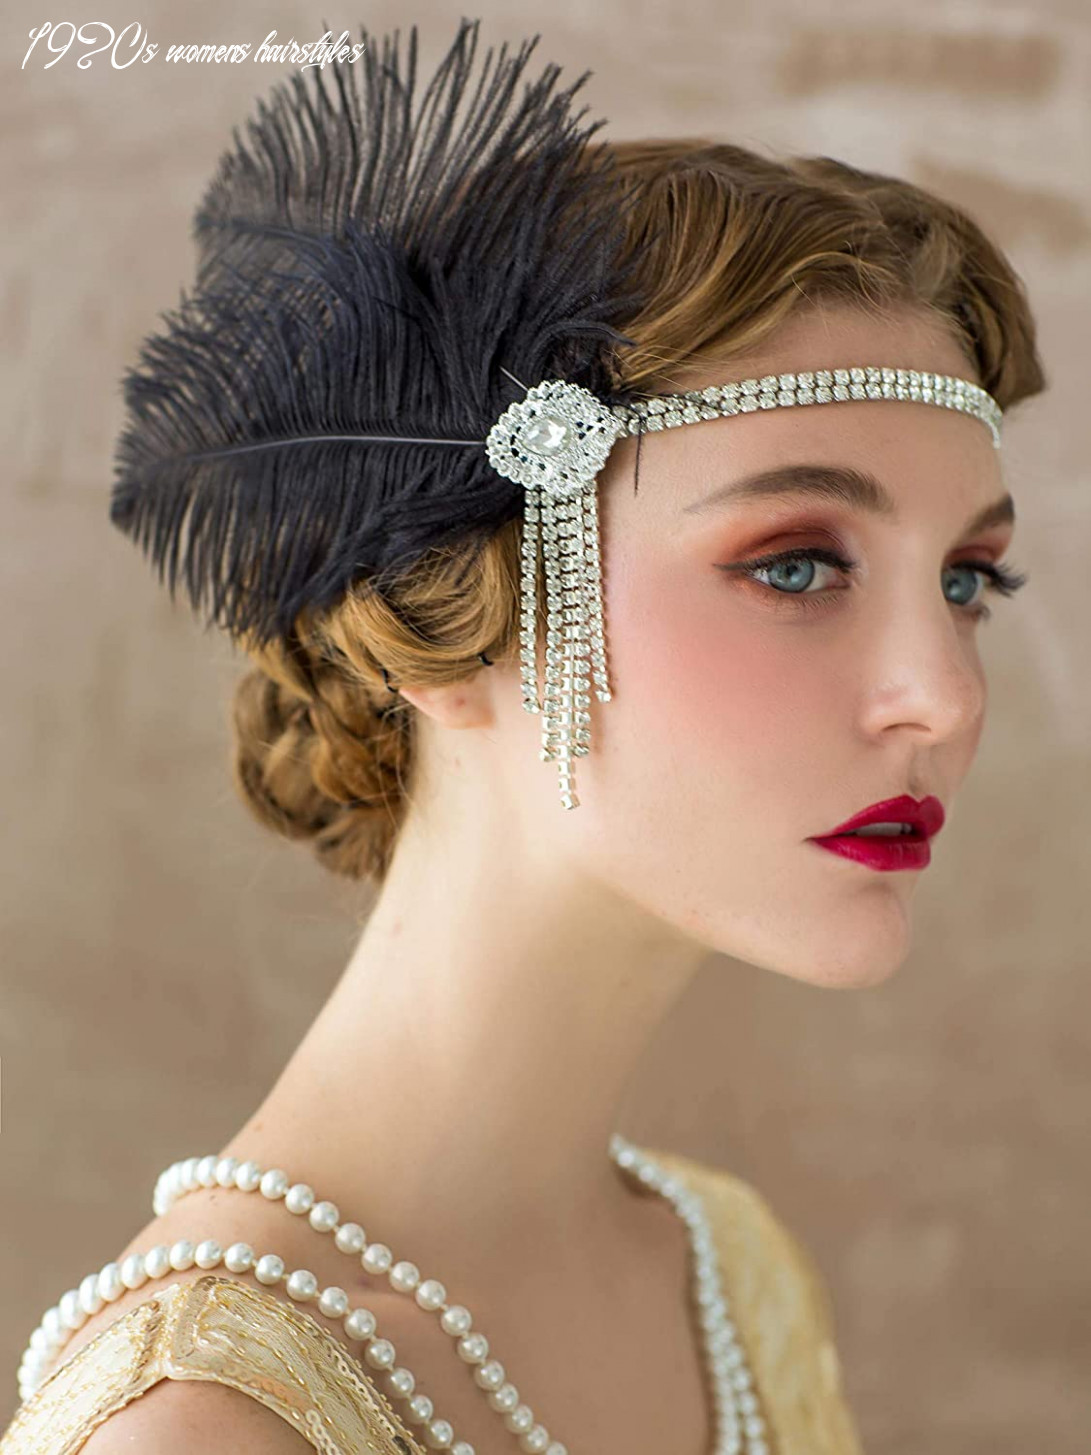 10s hairstyles history long hair to bobbed hair 1920s womens hairstyles